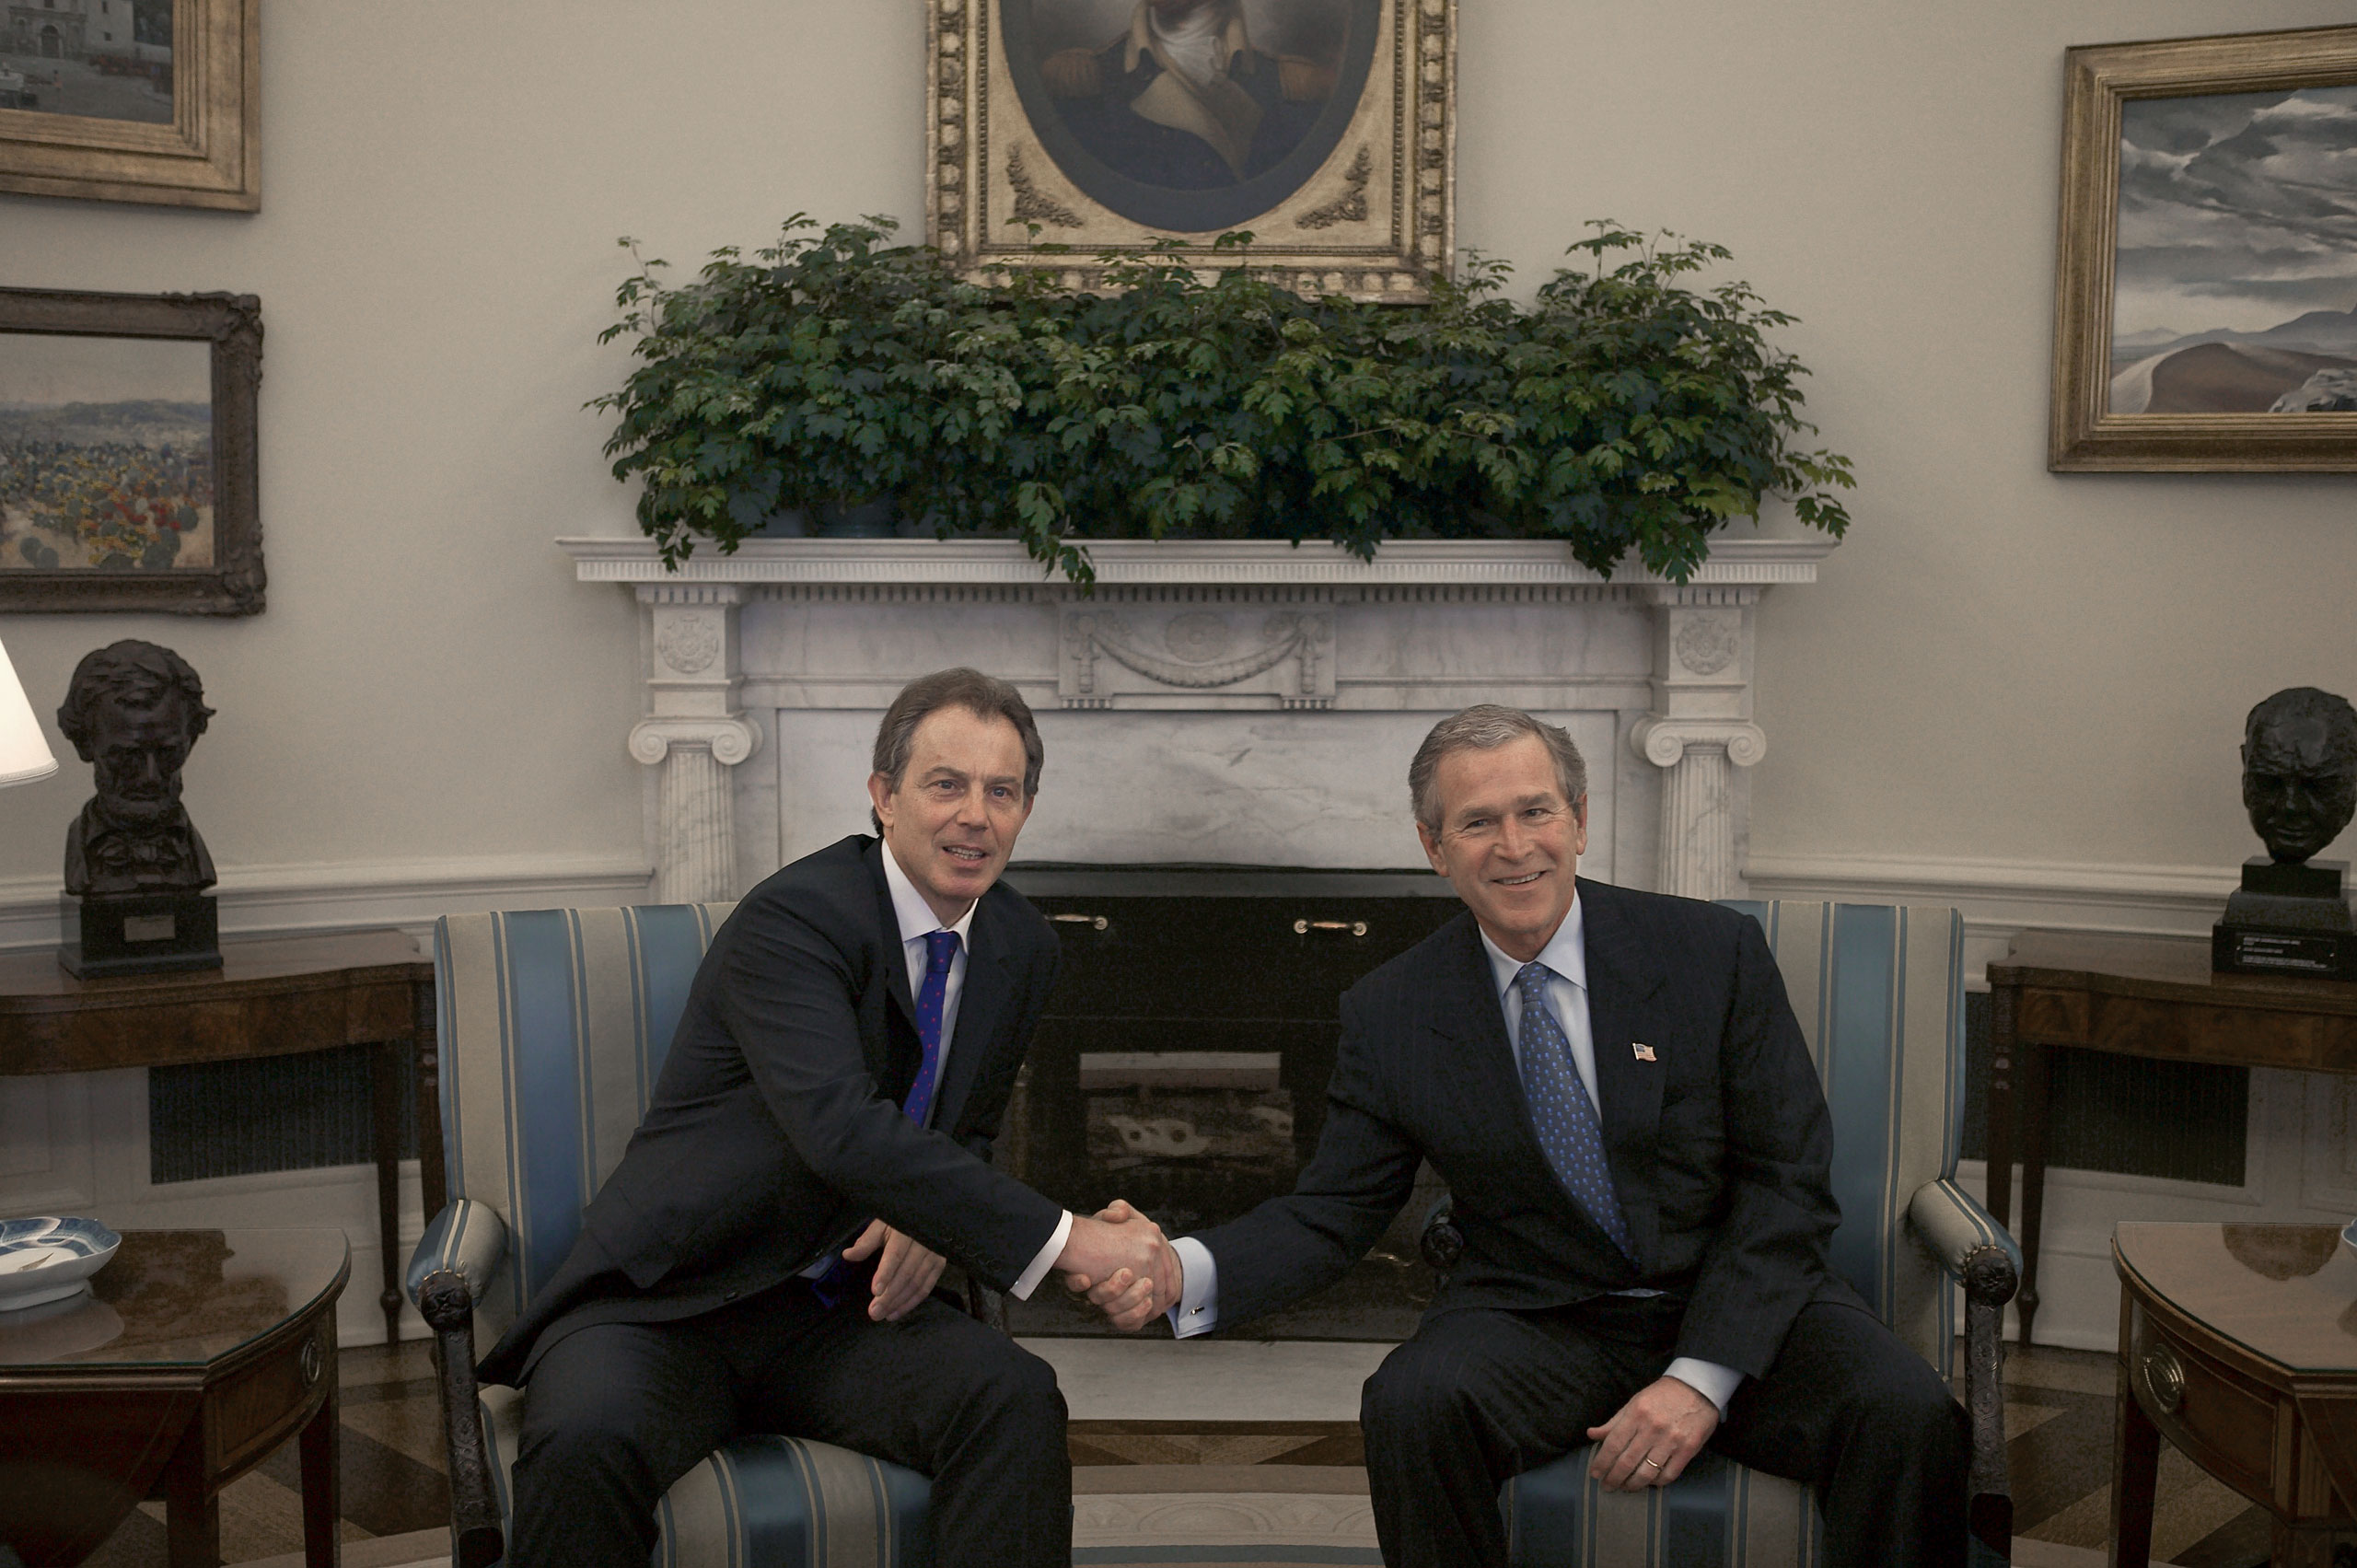 Did Blair secretly agree to back Bush on going to war in Iraq? A new report may reveal the answer